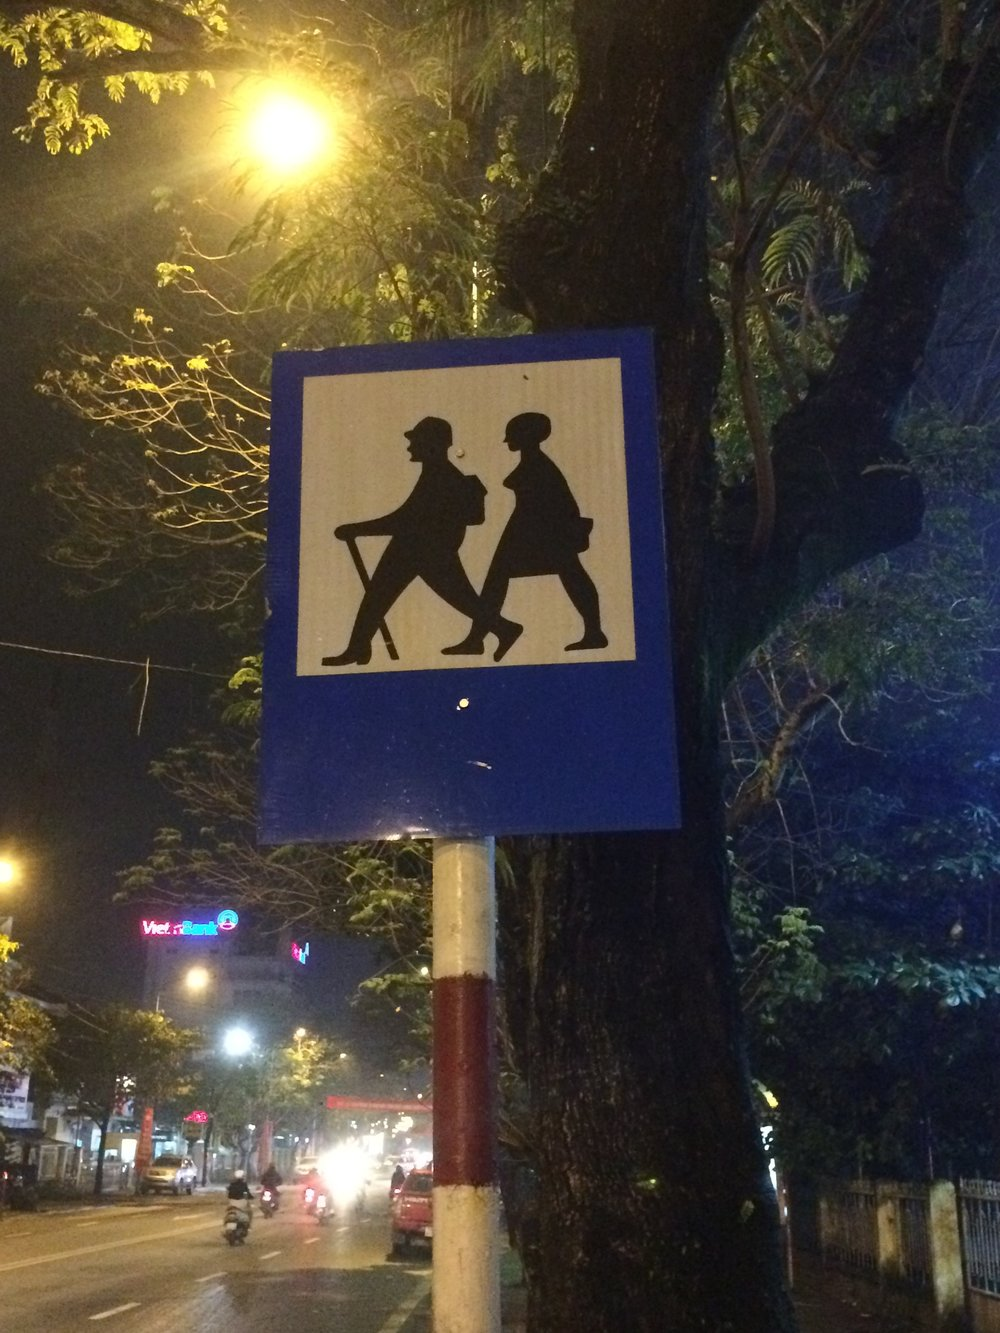 A crossing sign in Hue, Vietnam - are we supposed to identify with the silhouettes of these people? Hmmmmm. If you are not riding a motor scooter, I guess they assume you are a hitch hiker. Hue, Vietnam.